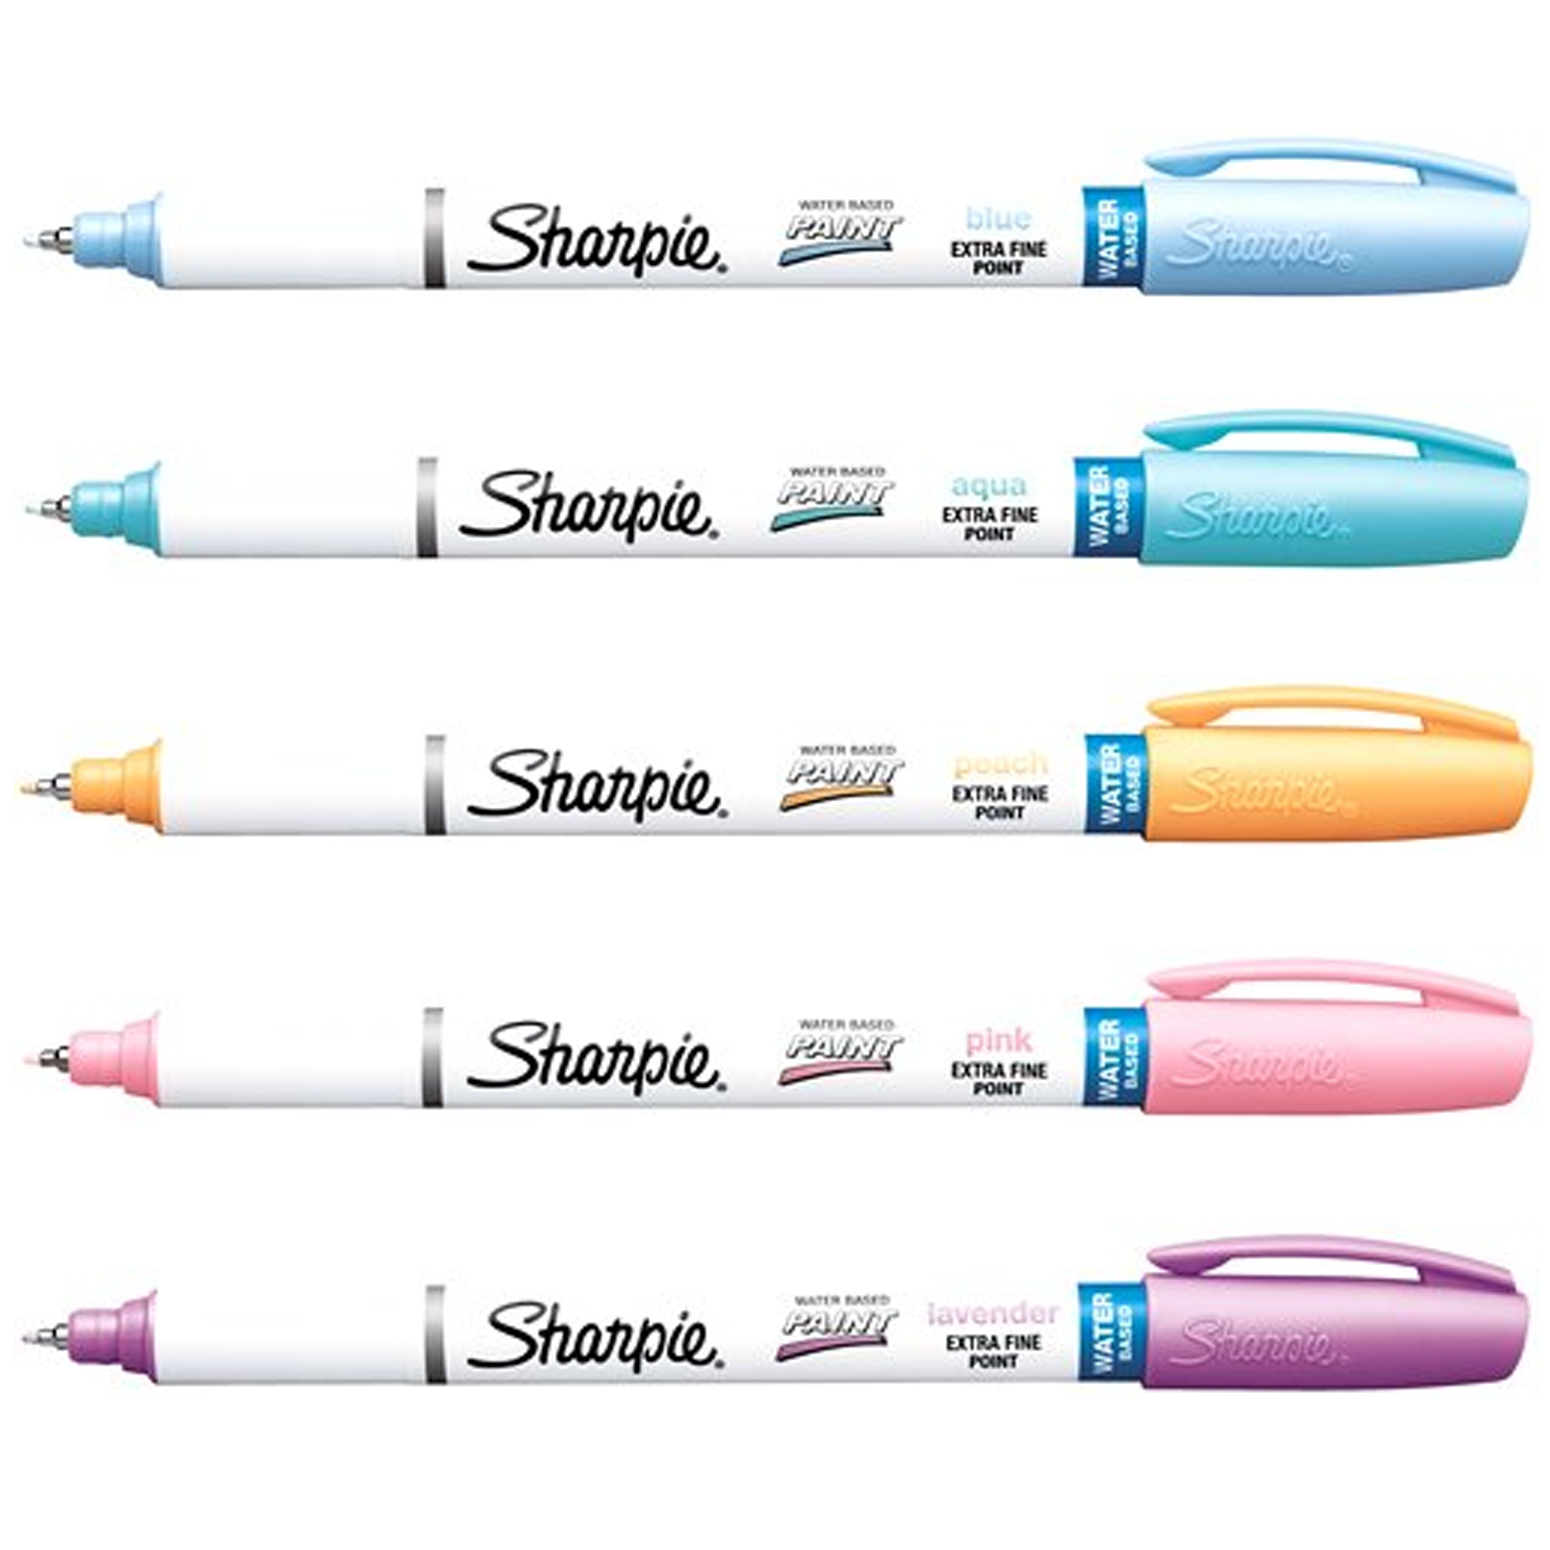 Img 5242904099 1513826316. Img 5242904099 1513826316. Sharpie Water-Based  Paint Markers, 6 count, Extra Fine Tip ...